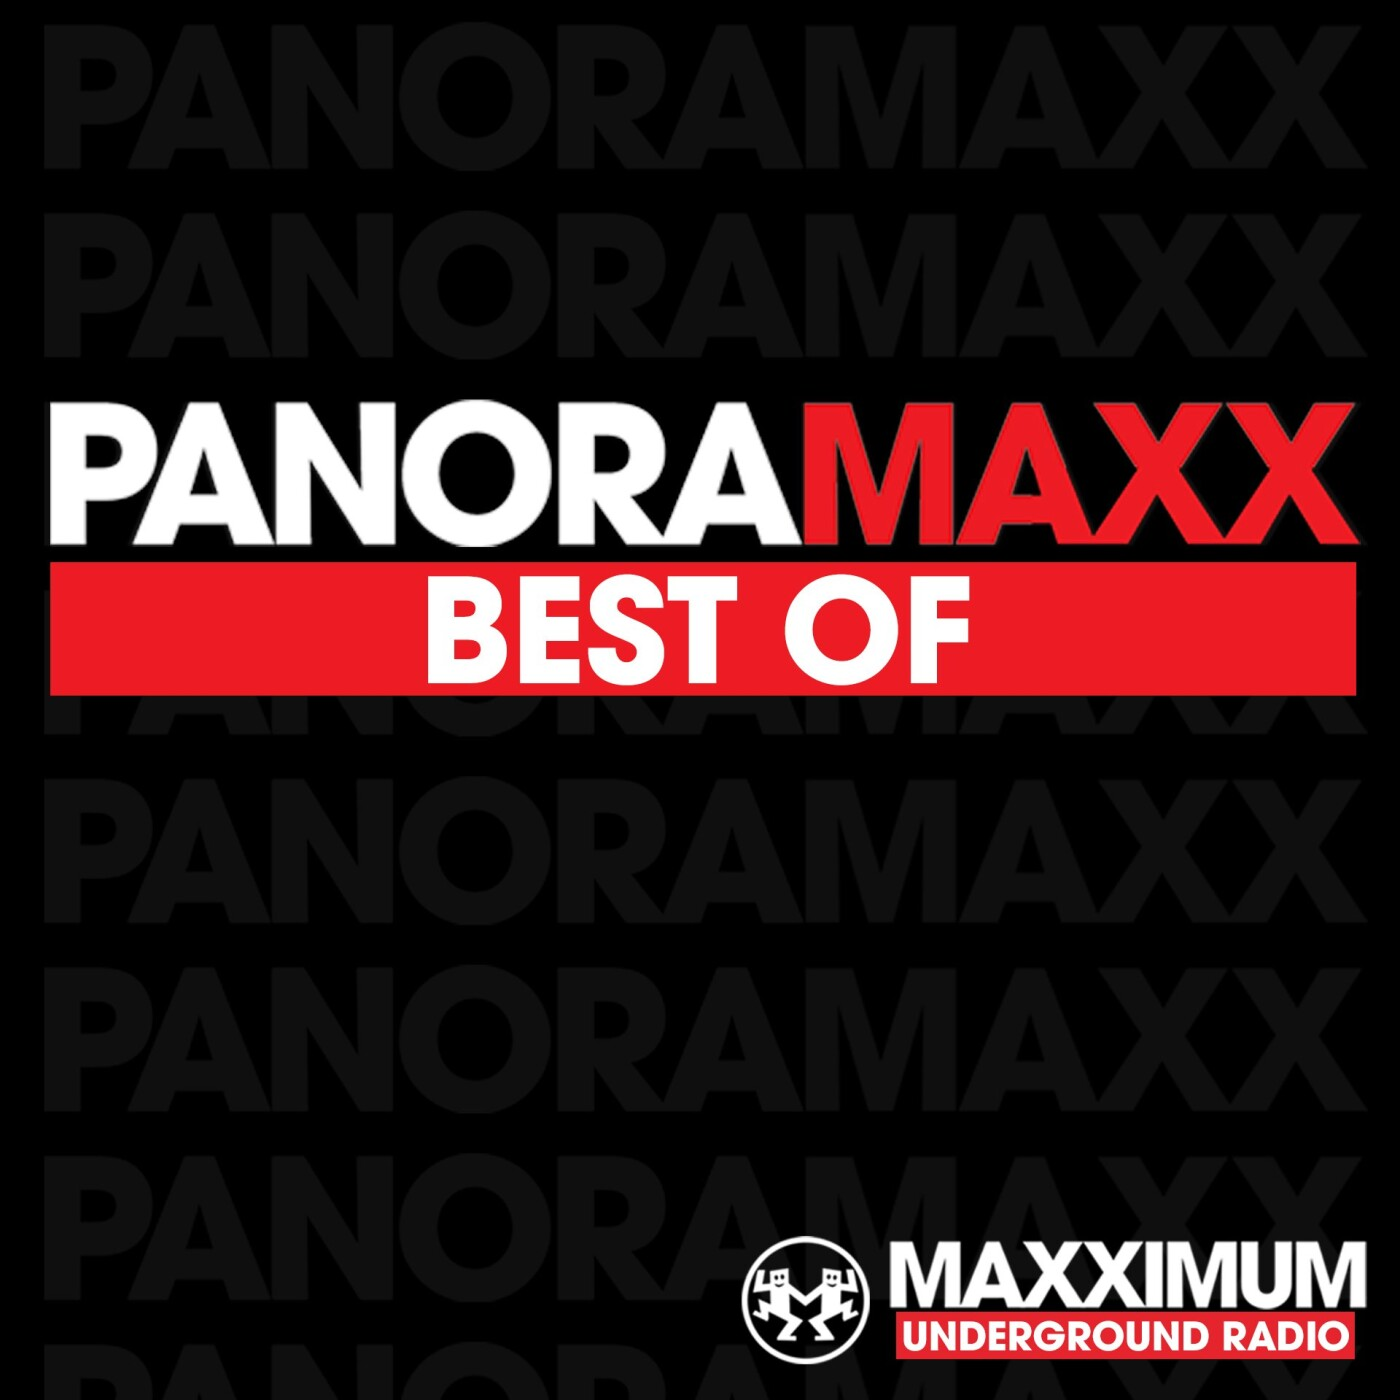 PANORAMAXX BEST OF : REIMS IS TECHNO